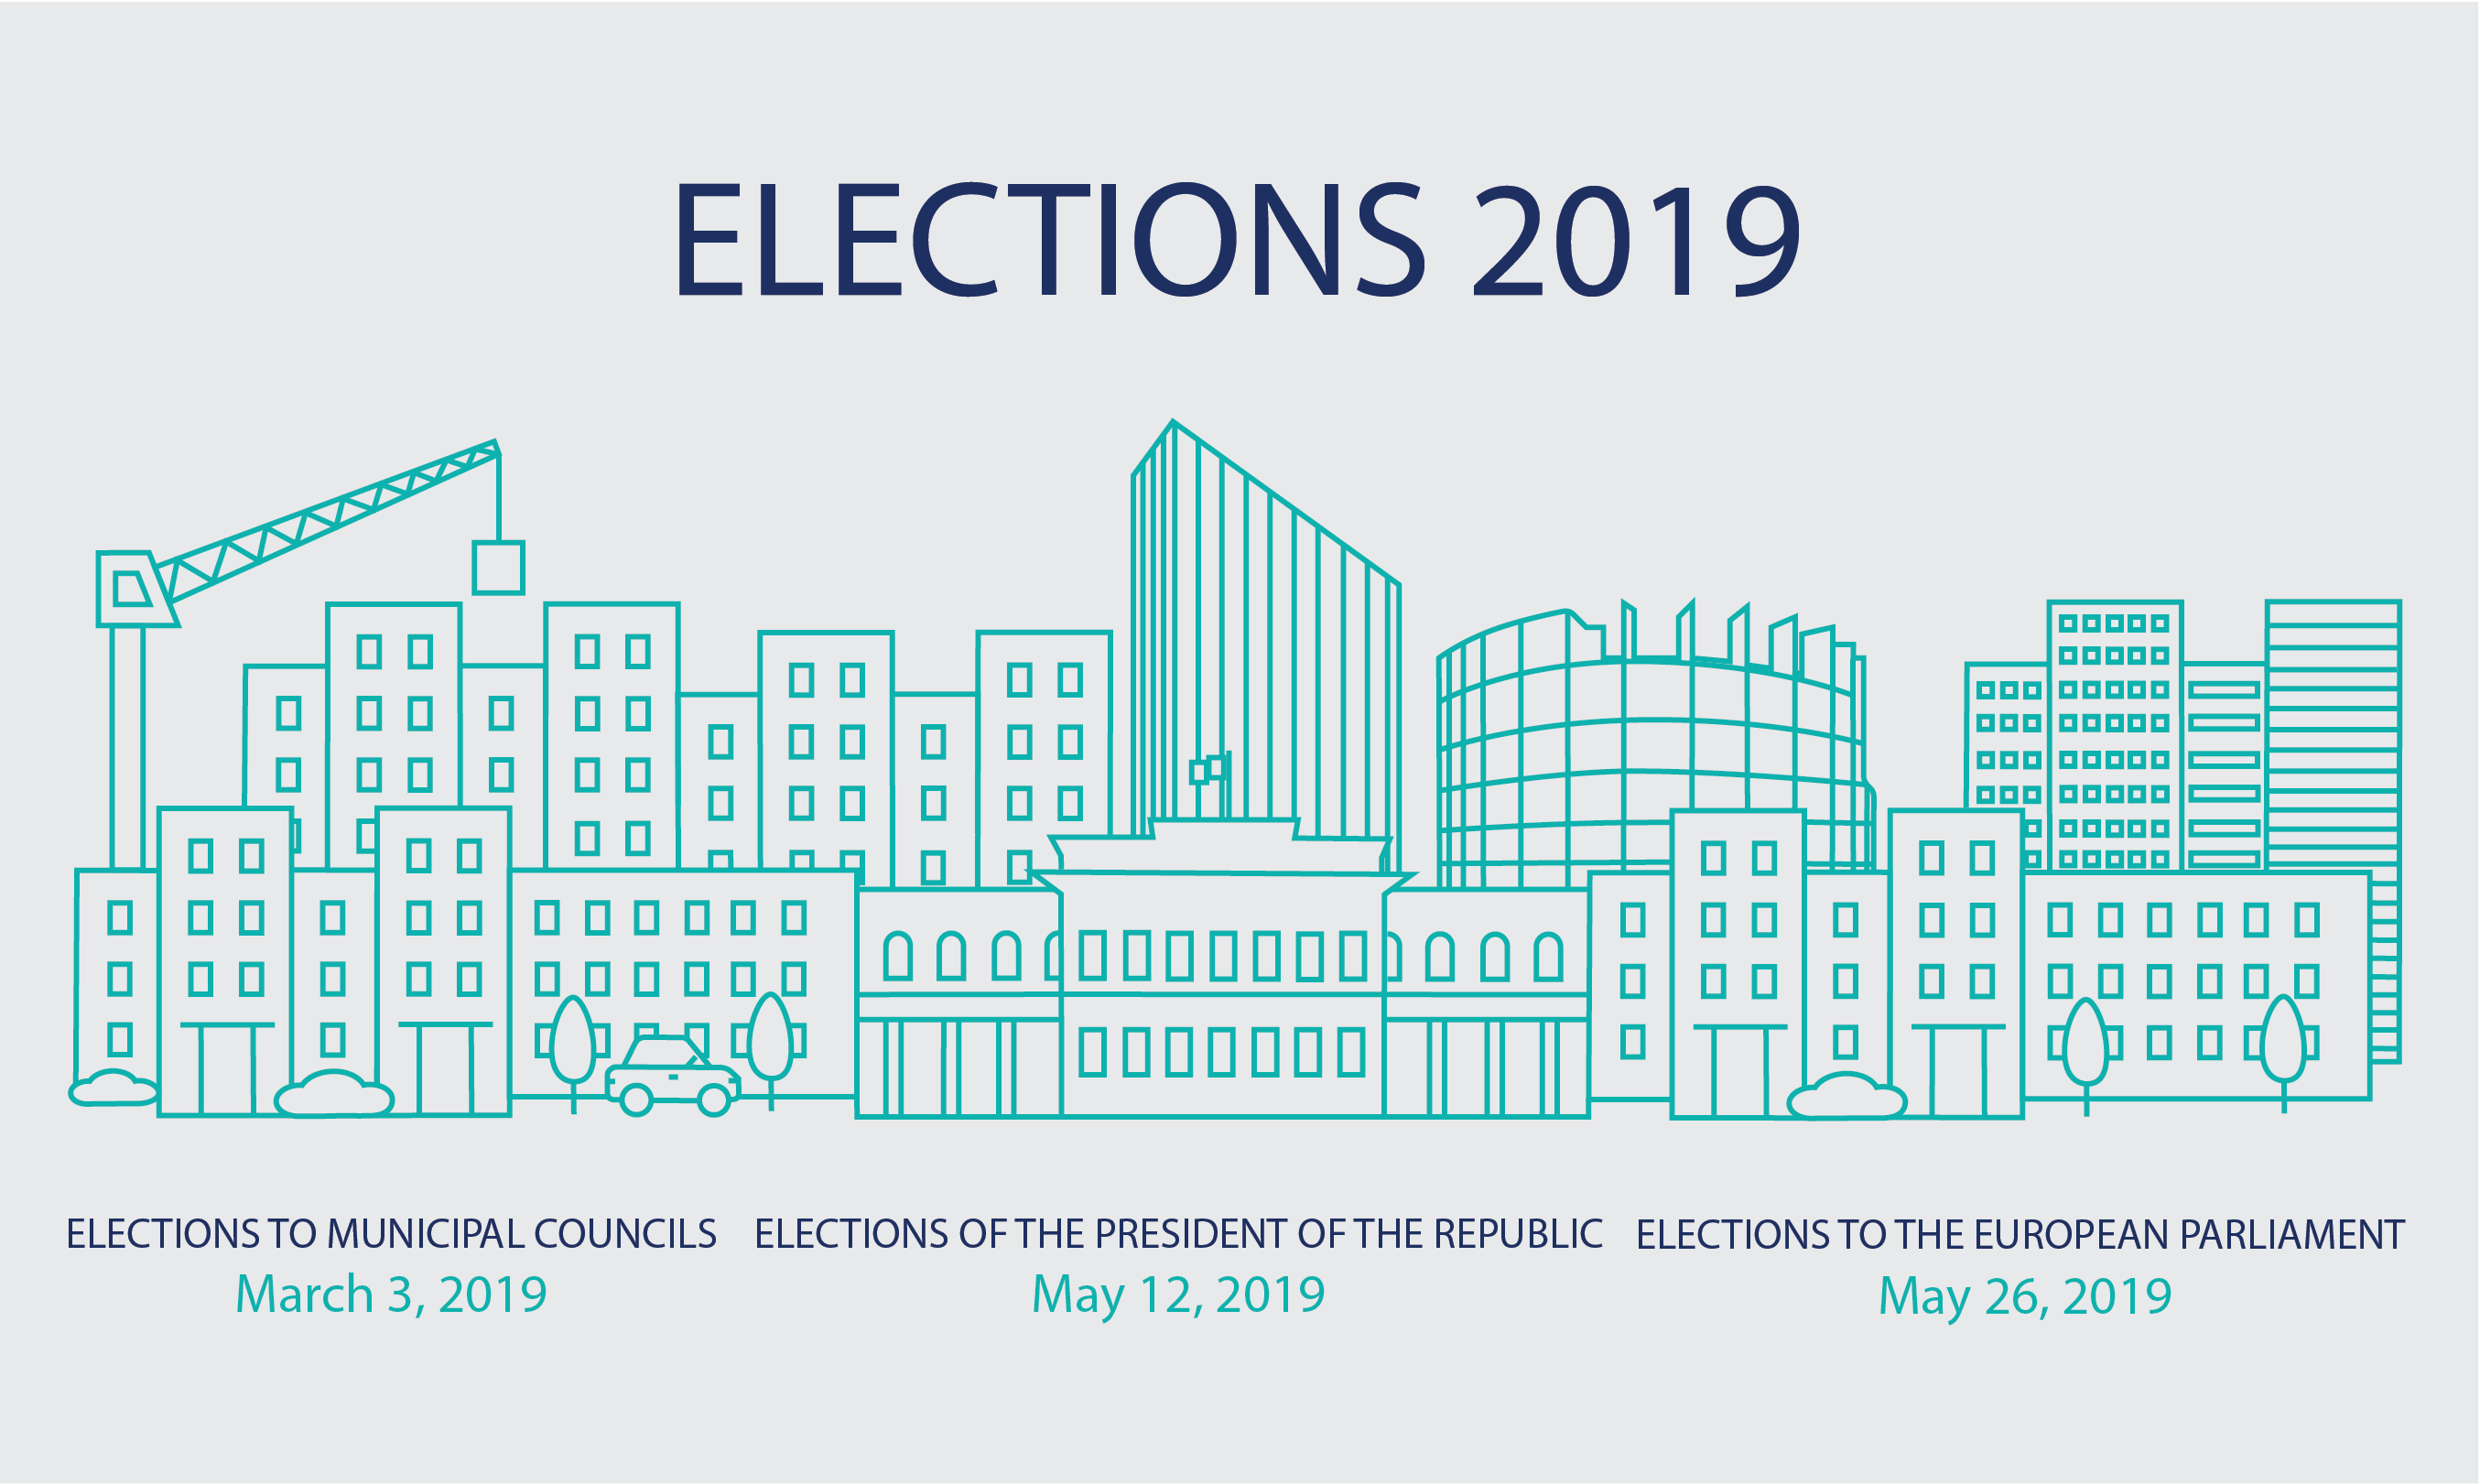 The forthcoming elections in 2019